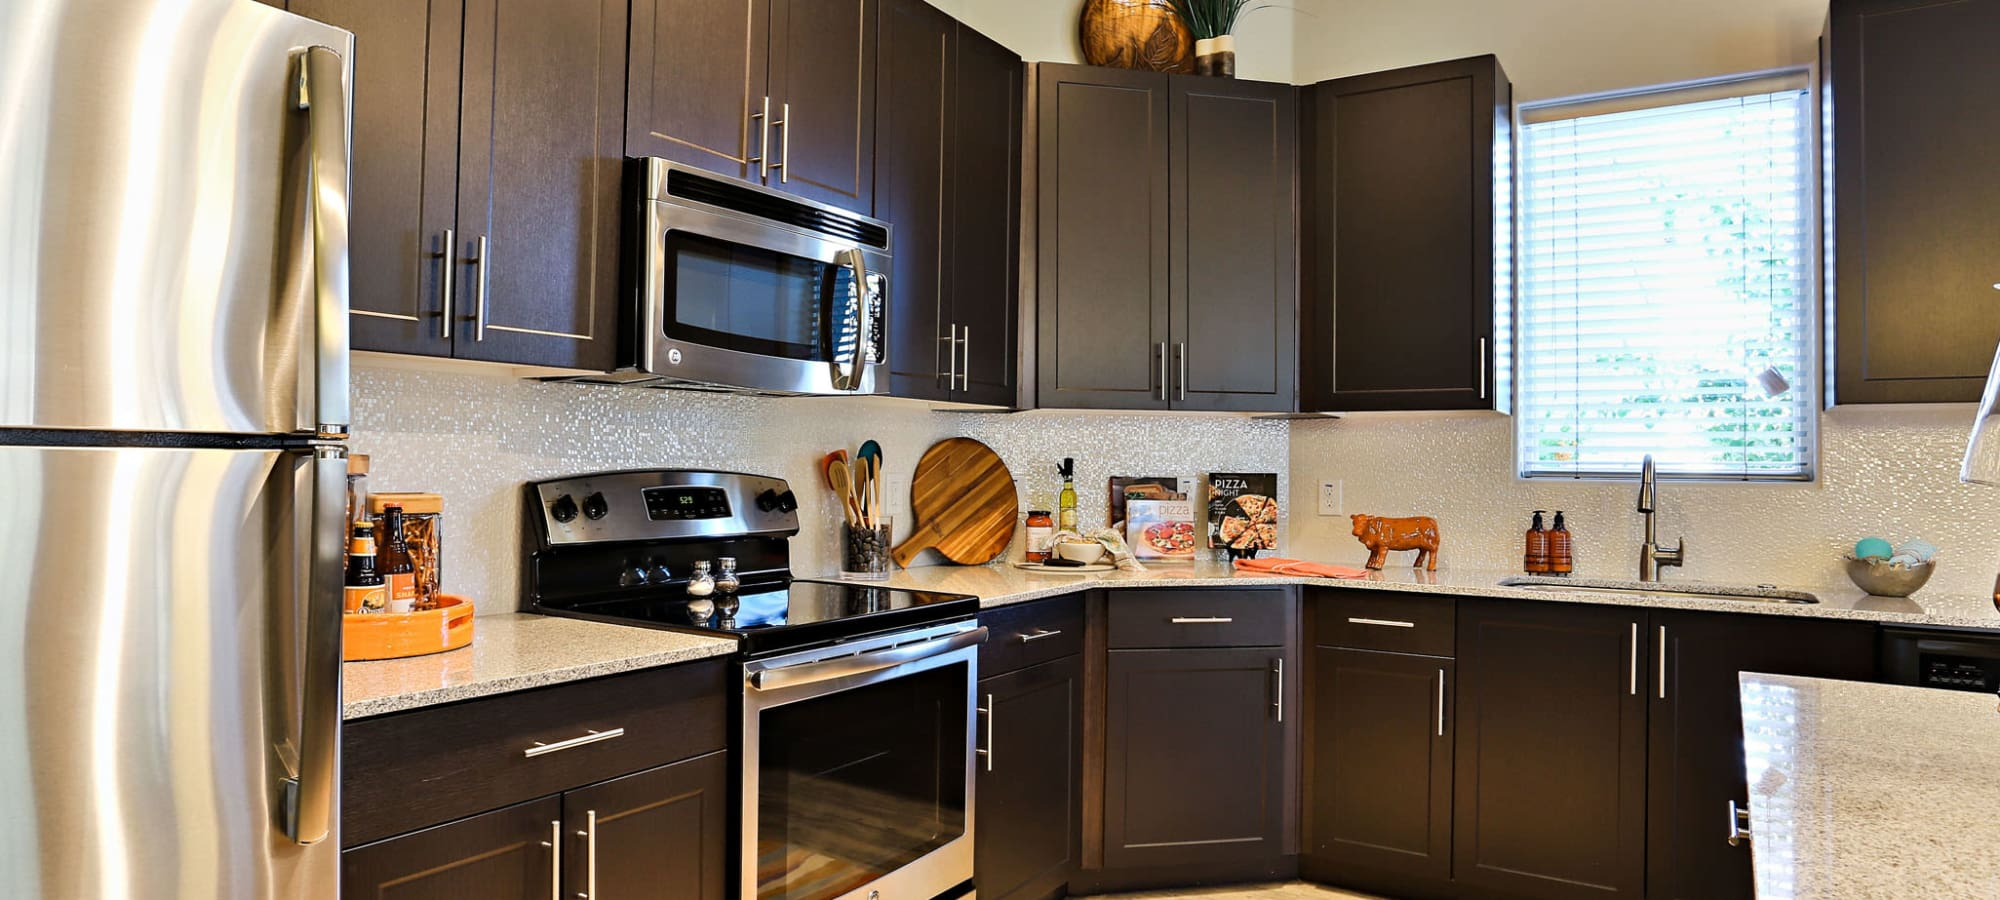 Stainless-steel appliances and dark wood cabinetry in model home's kitchen at The Hyve in Tempe, Arizona